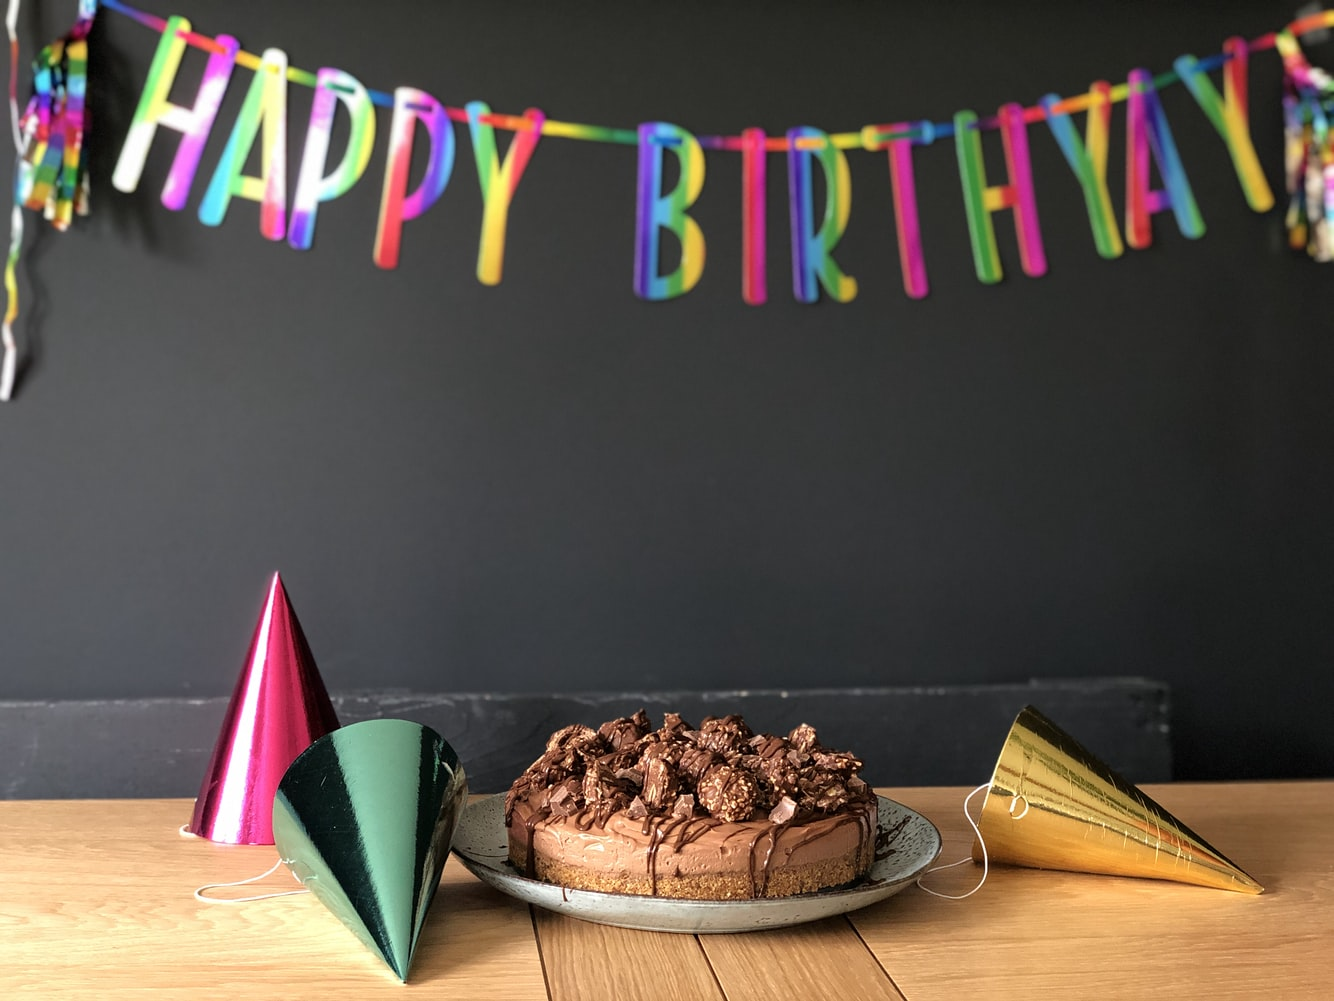 10 gift ideas for an 80th birthday